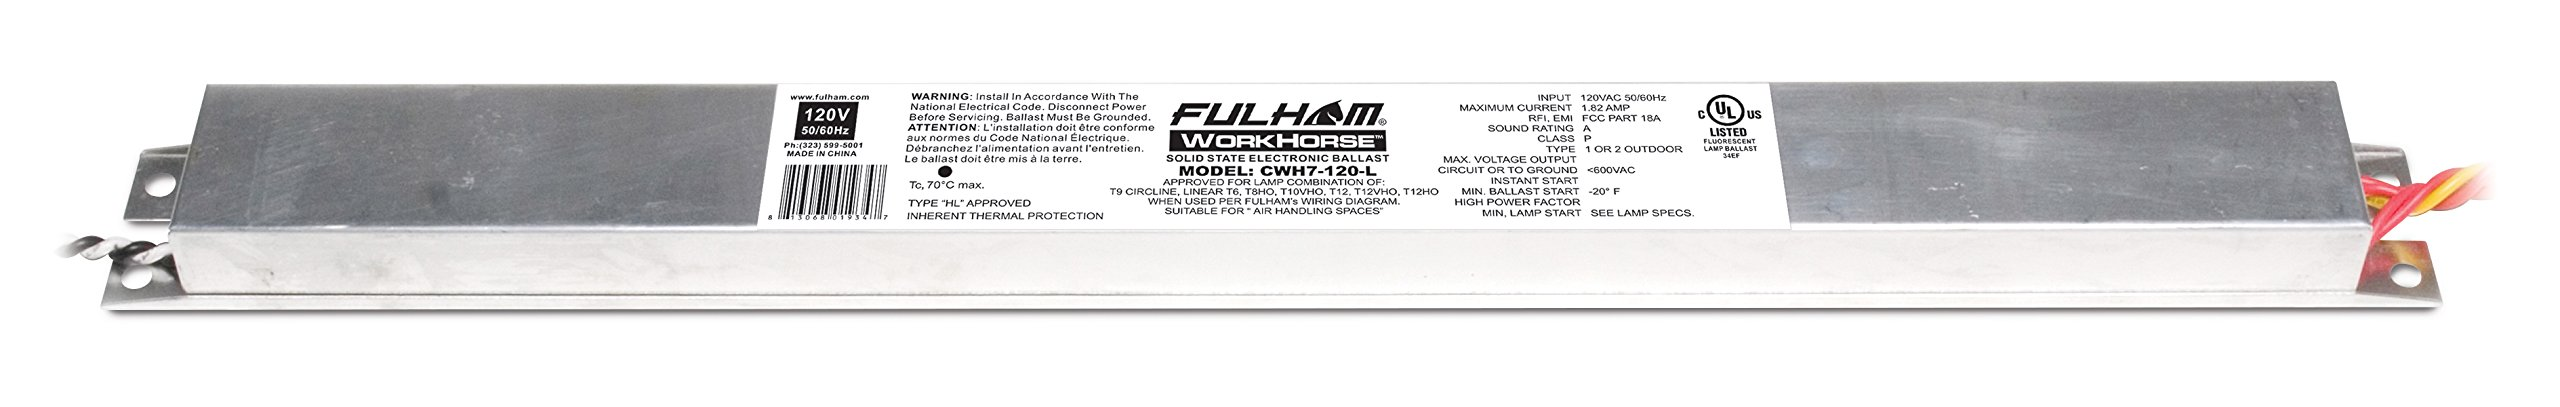 Fulham Lighting CWH7-120-L Canada Series-Workhorse 7-120V-Linear Model with Side Leads by Fulham Lighting (Image #1)